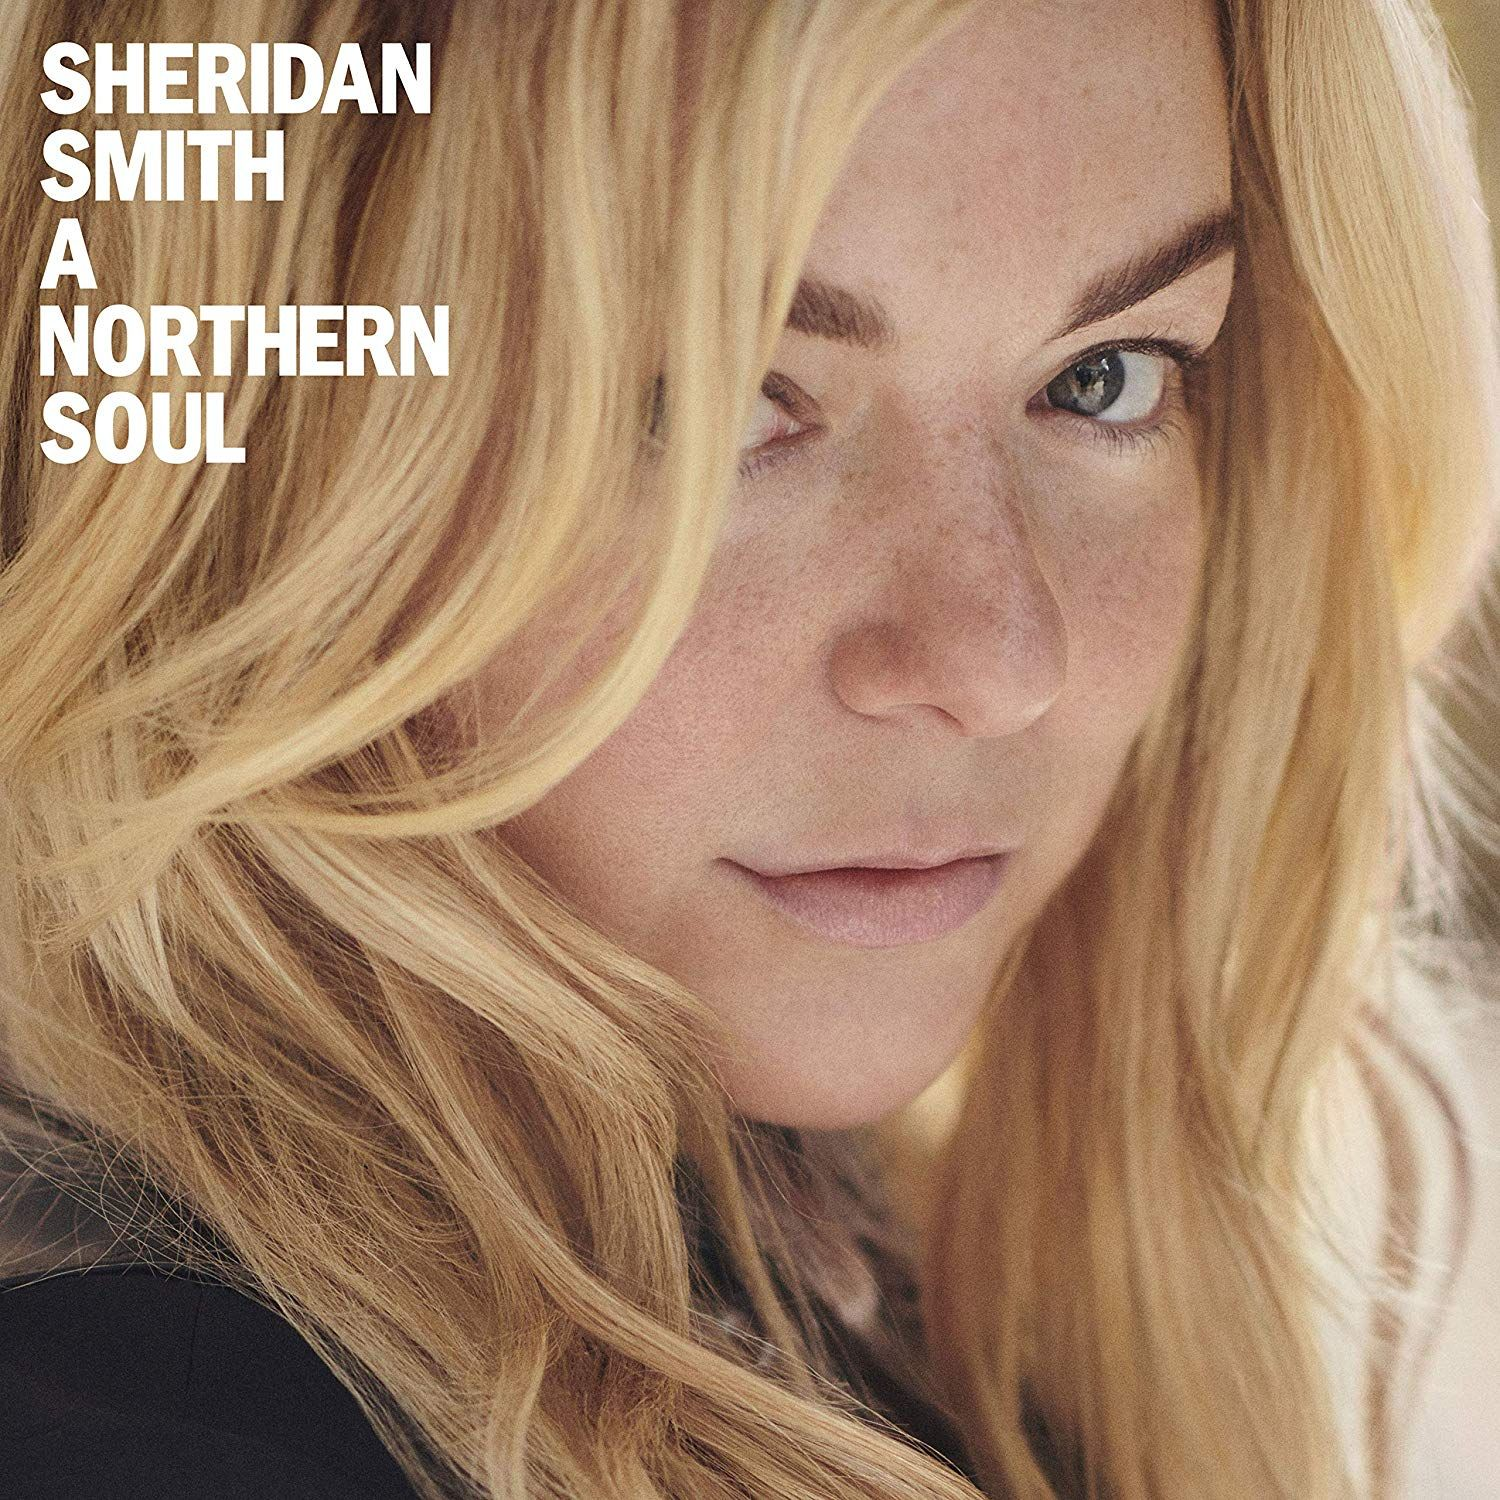 Sheridan Smith - A Northern Soul album cover